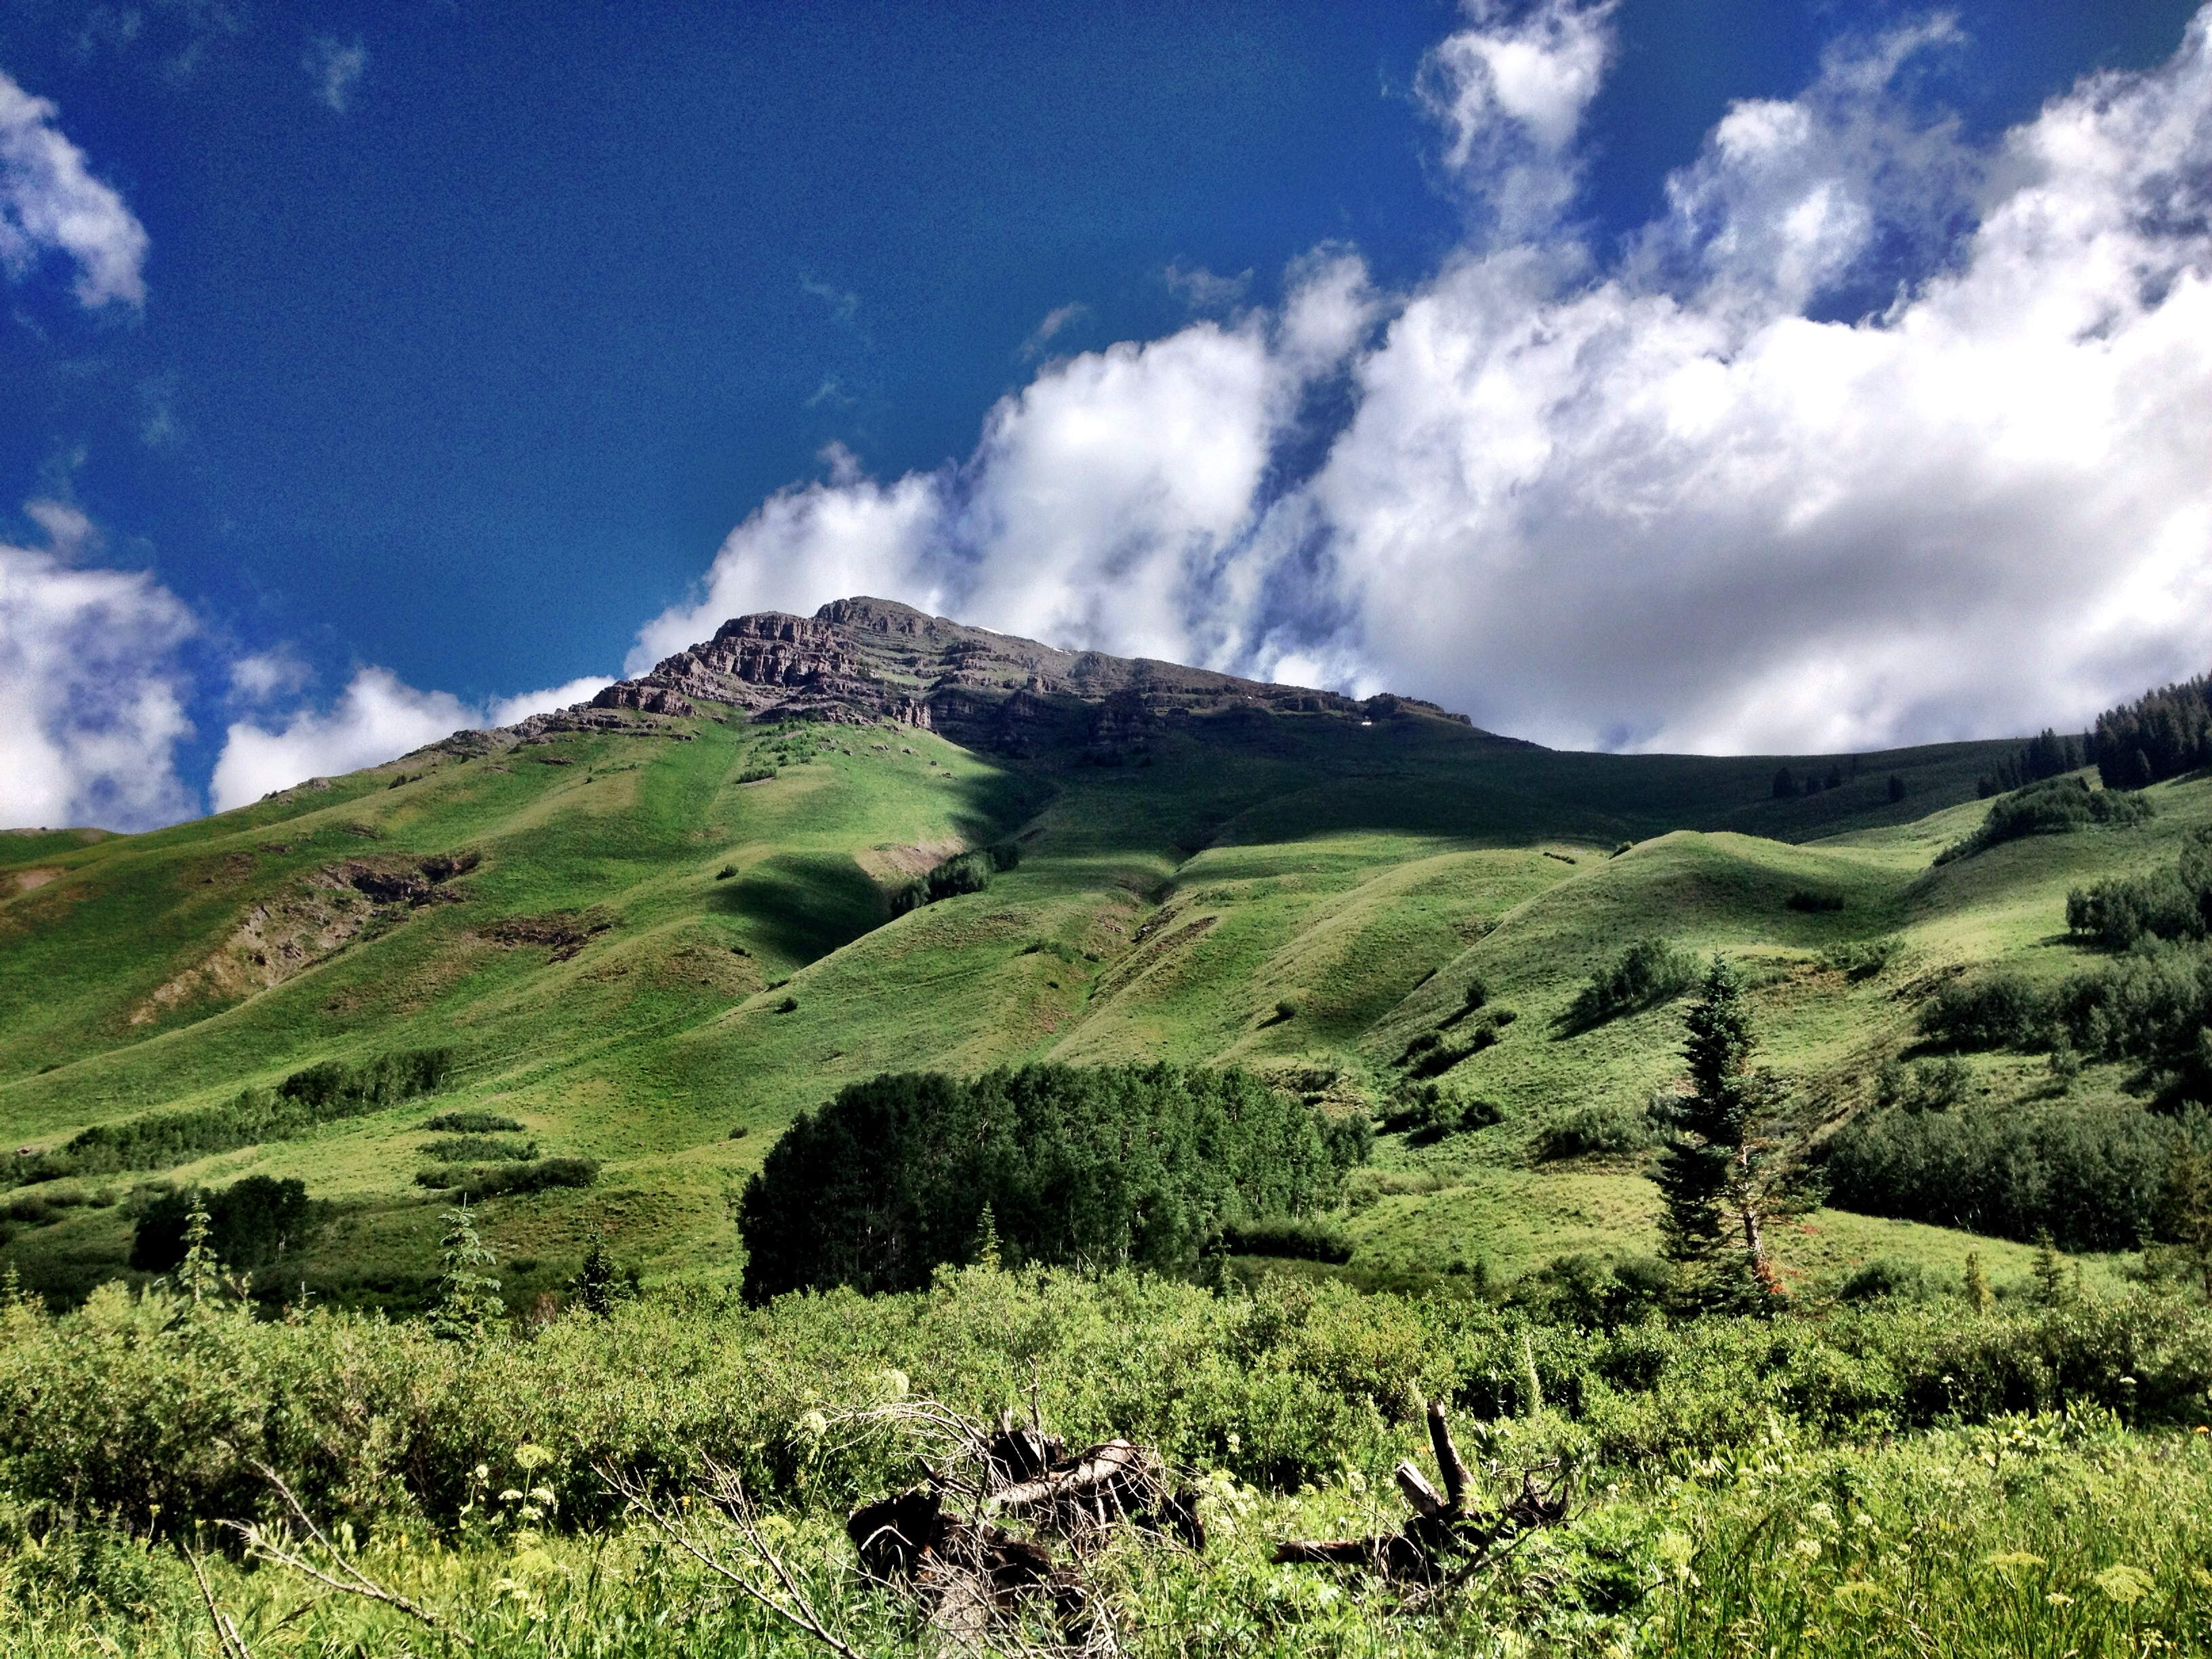 Umm yeah... Crested Butte is amazing.